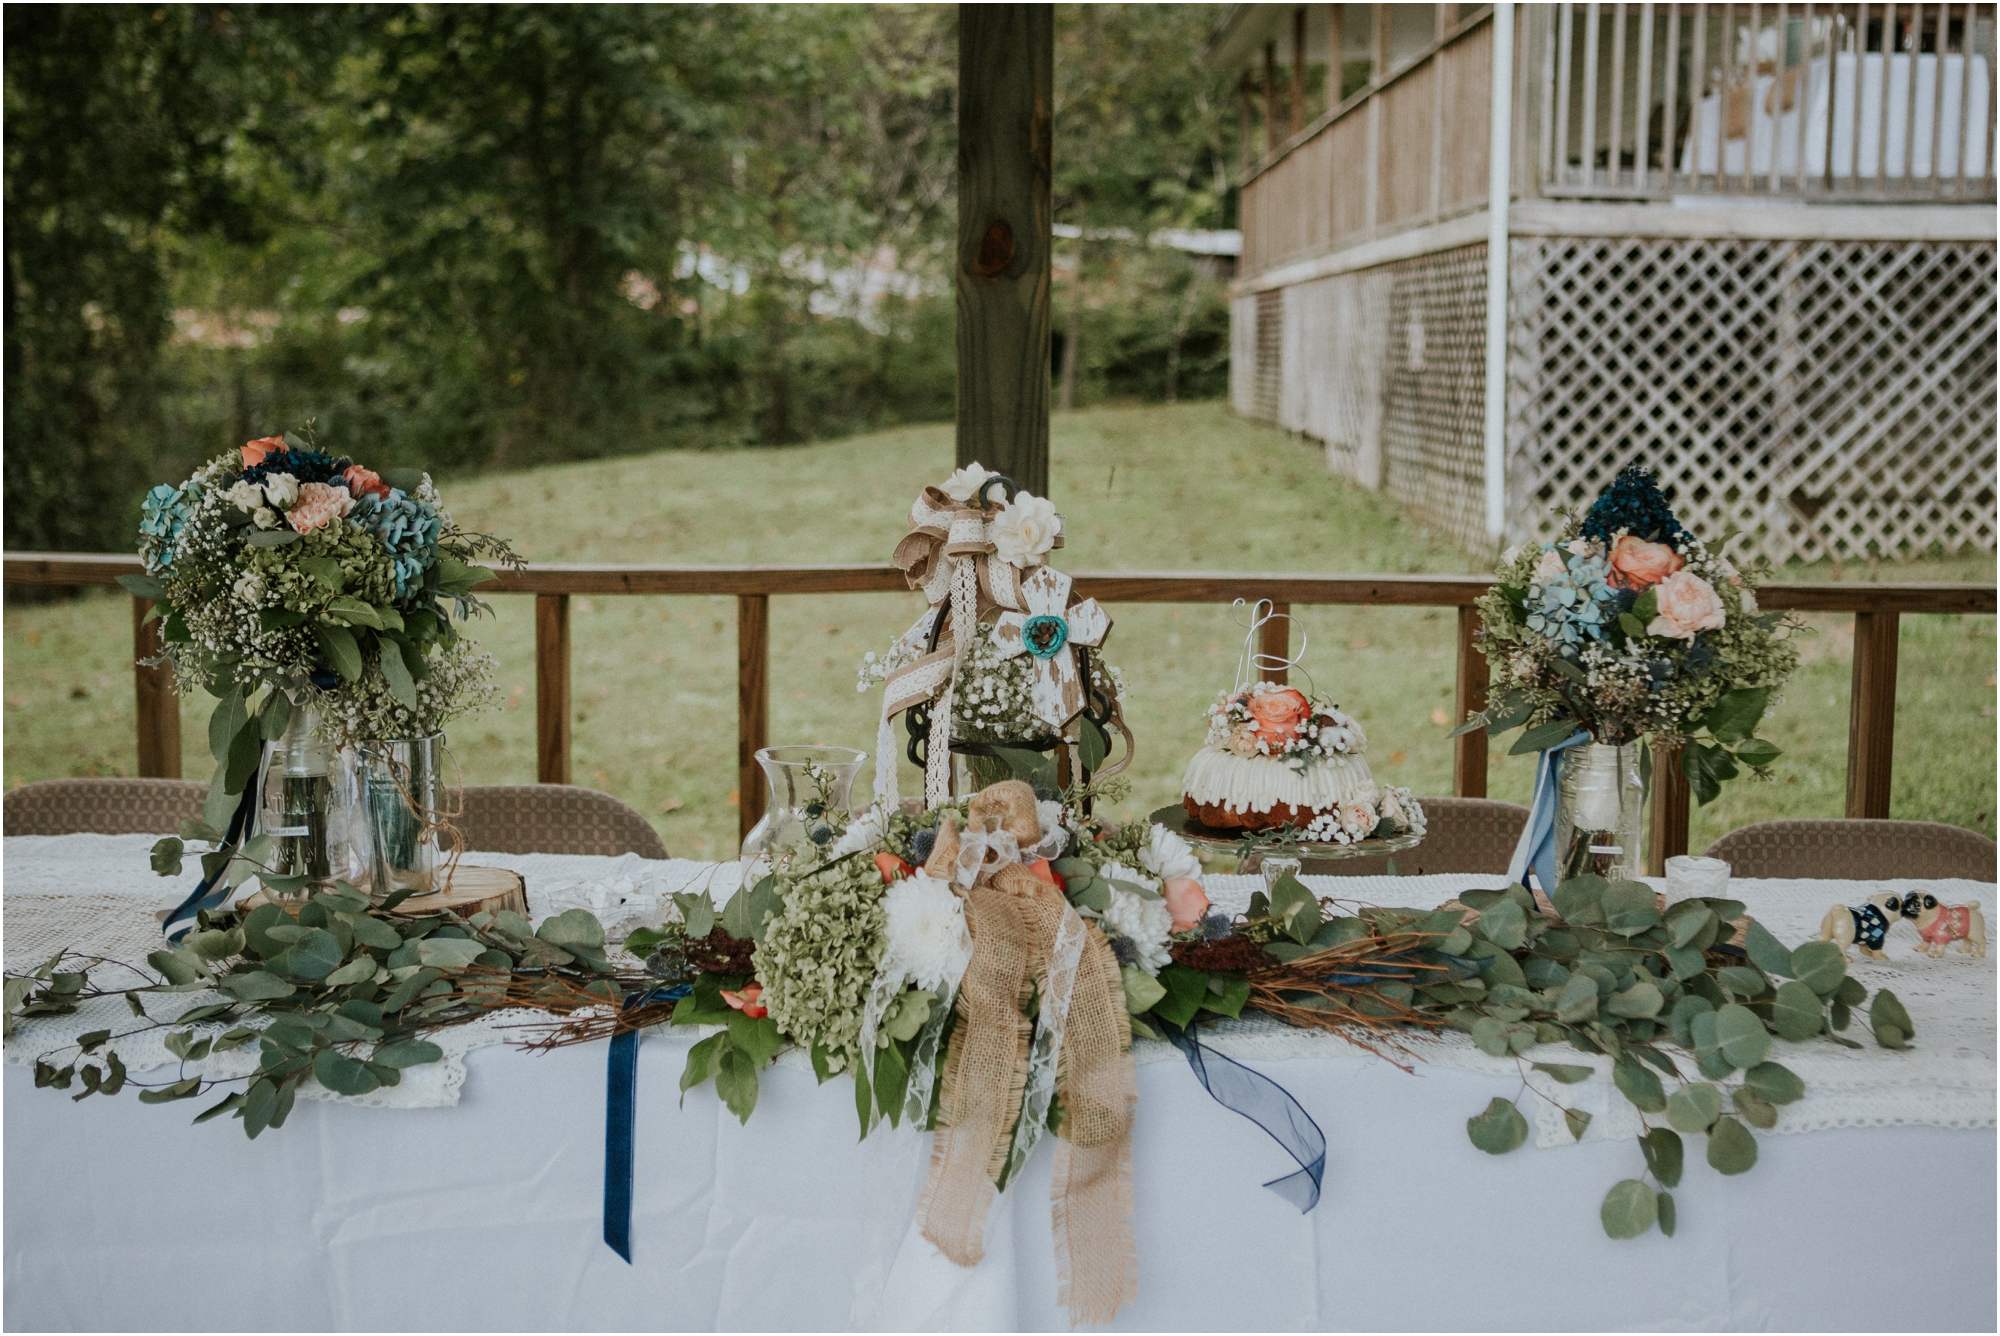 caryville-robbins-middle-tennessee-intimate-cozy-fall-navy-rustic-backyard-wedding_0101.jpg